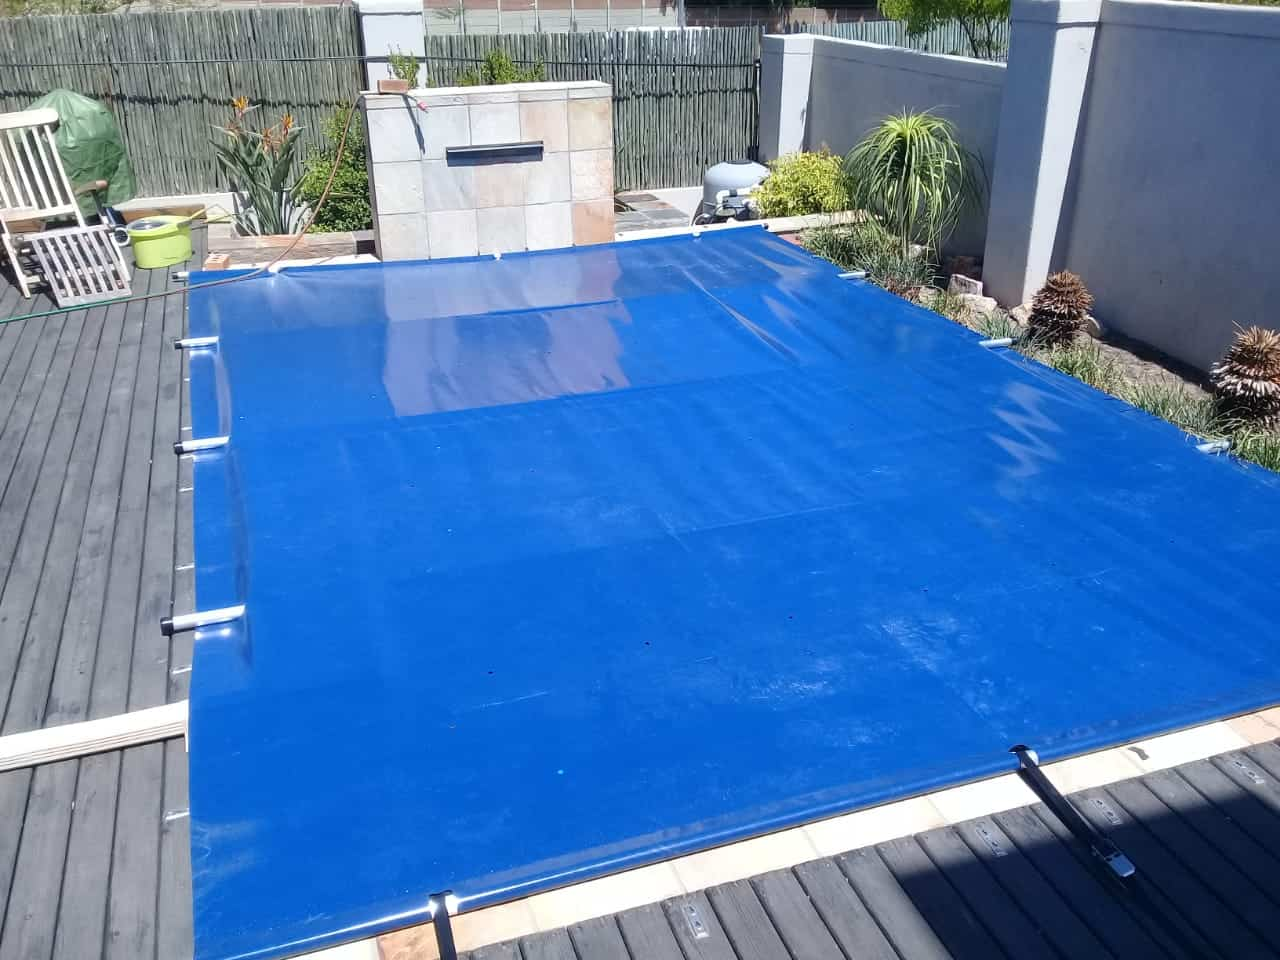 Pool Covers Cape Town, Pool Covers Cape Town – Protecto Covers, Pool Covers Cape Town, Pool Covers Cape Town